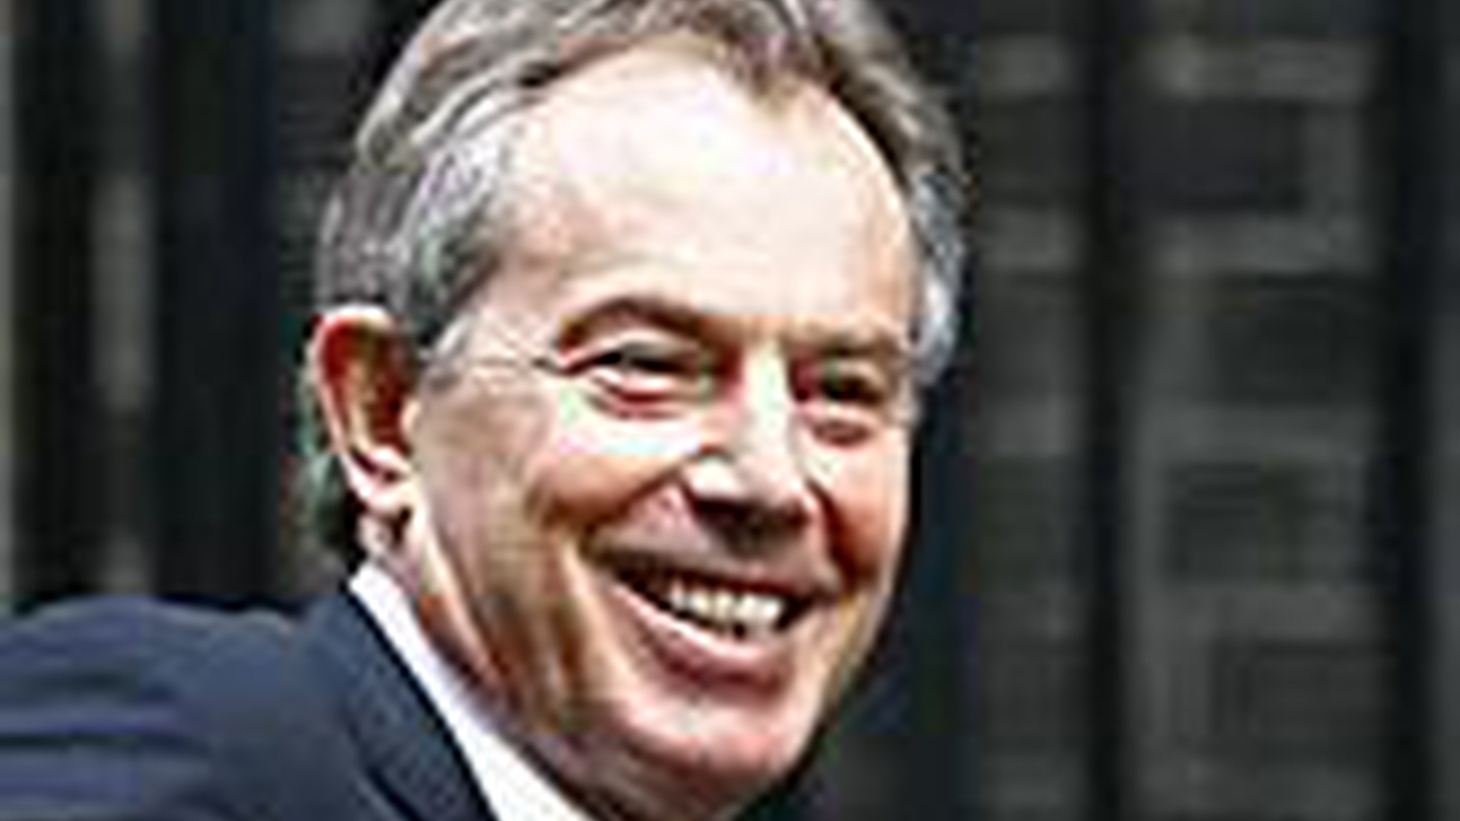 """Tony Blair helped resolved the """"Troubles"""" in Northern Ireland. Now he's a Special Envoy to the Middle East. Will the lessons of one conflict apply to the other? Also, a massive car bomb discovered in London, and the Supreme Court and Guantánamo Bay."""